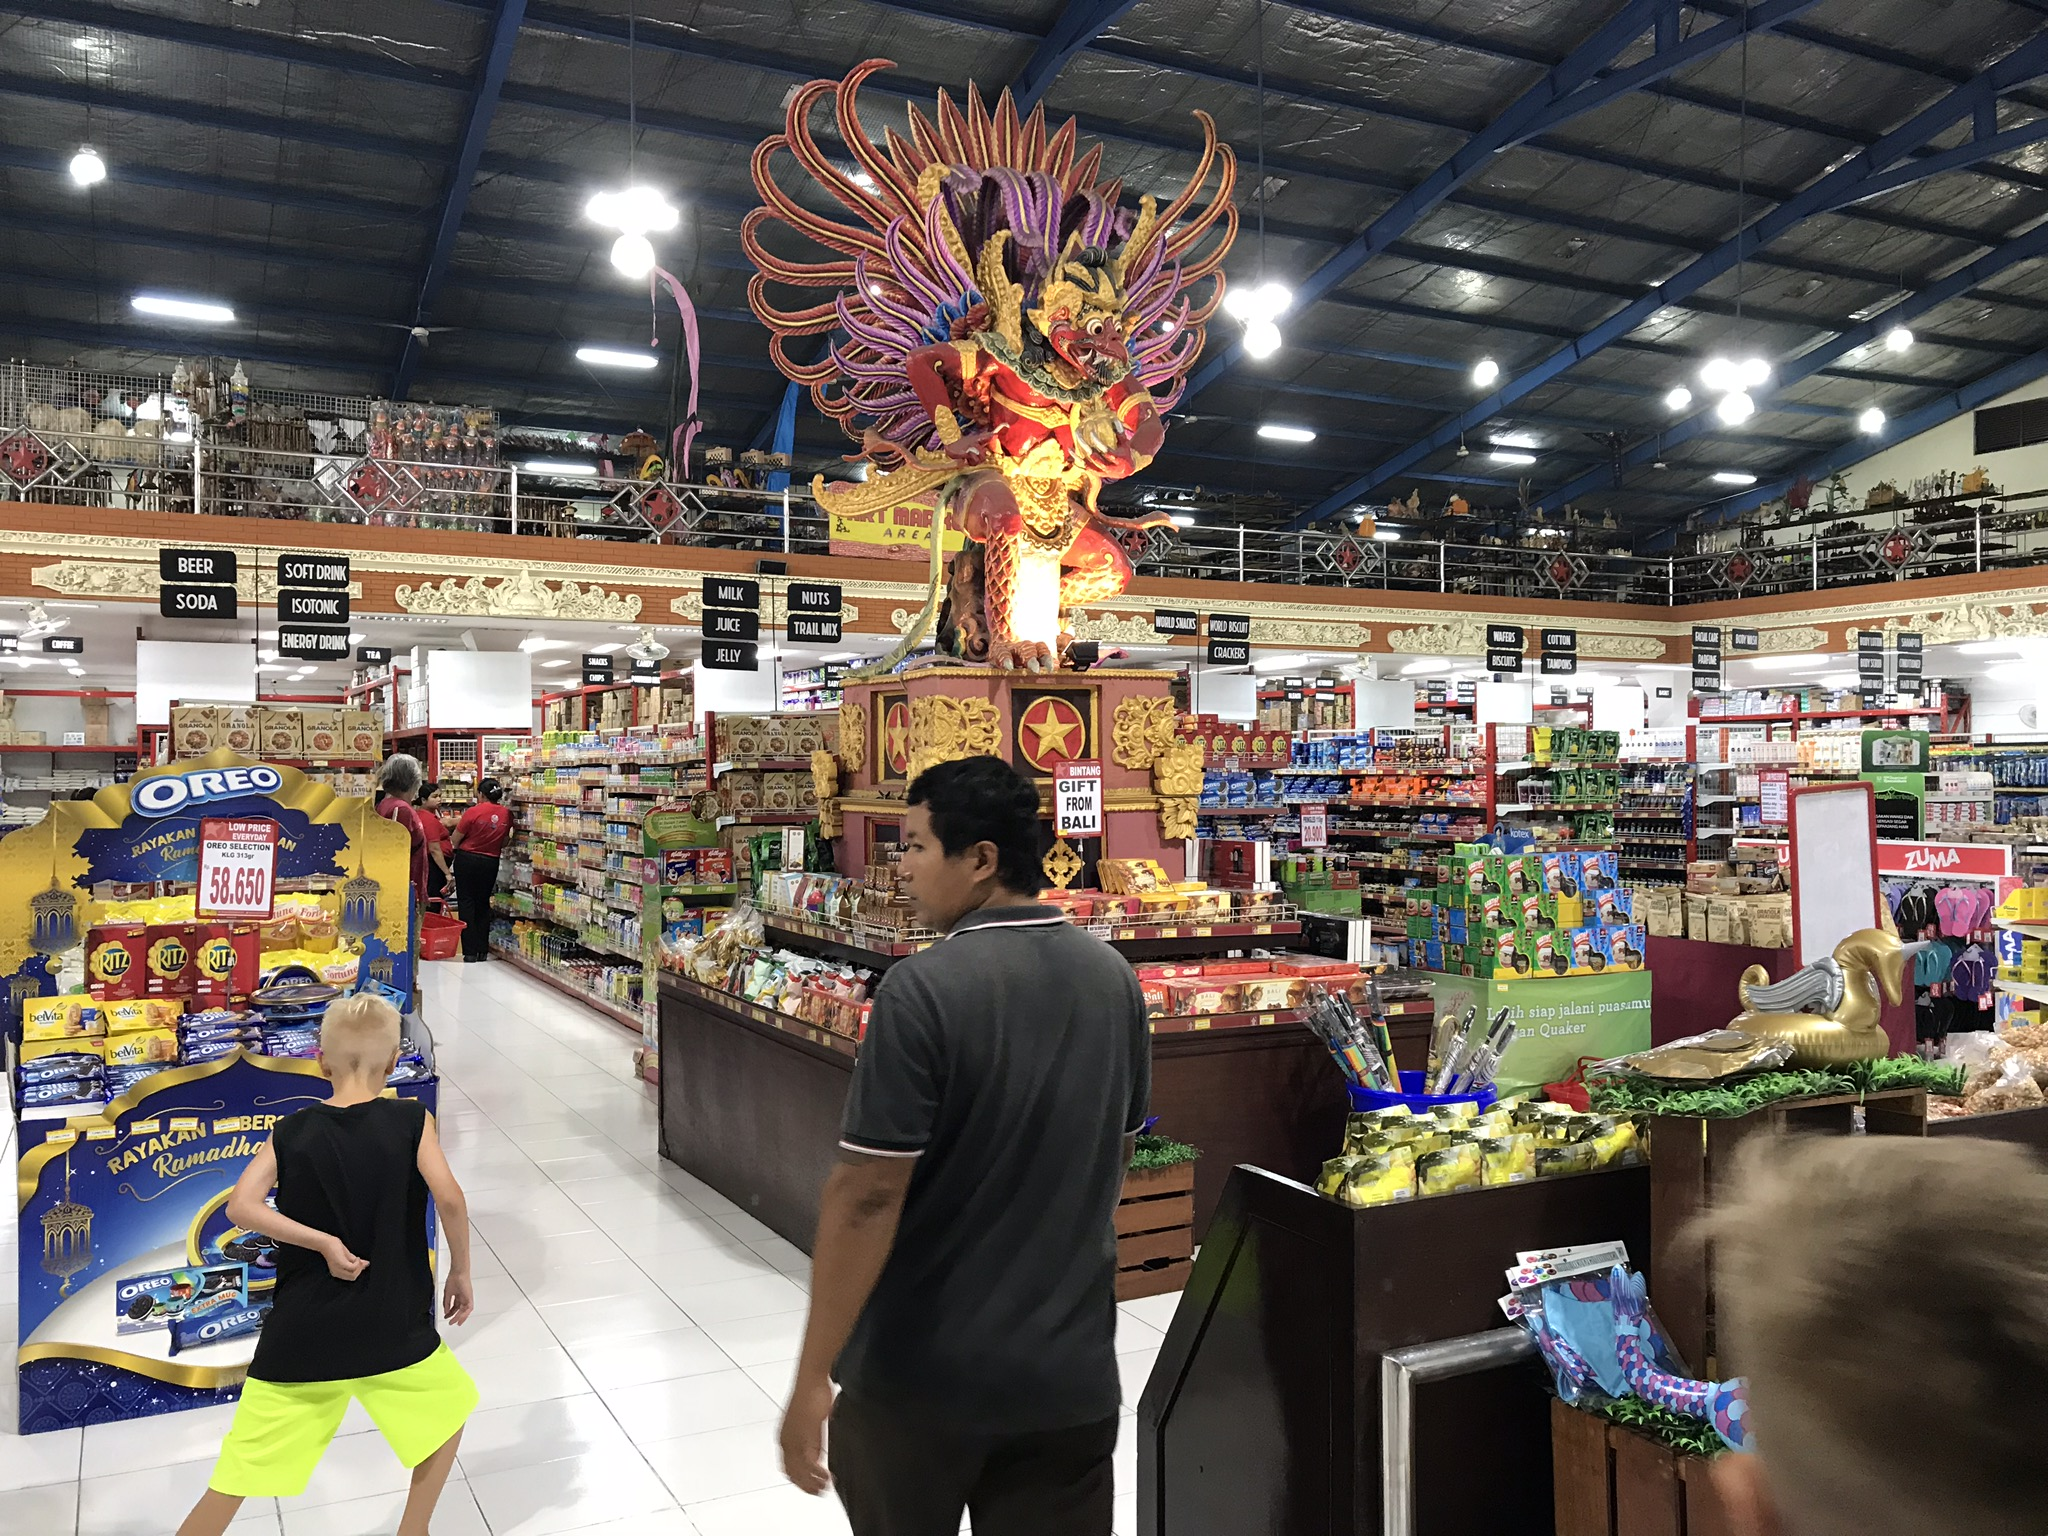 Balinese grocery store - brands are brands everywhere